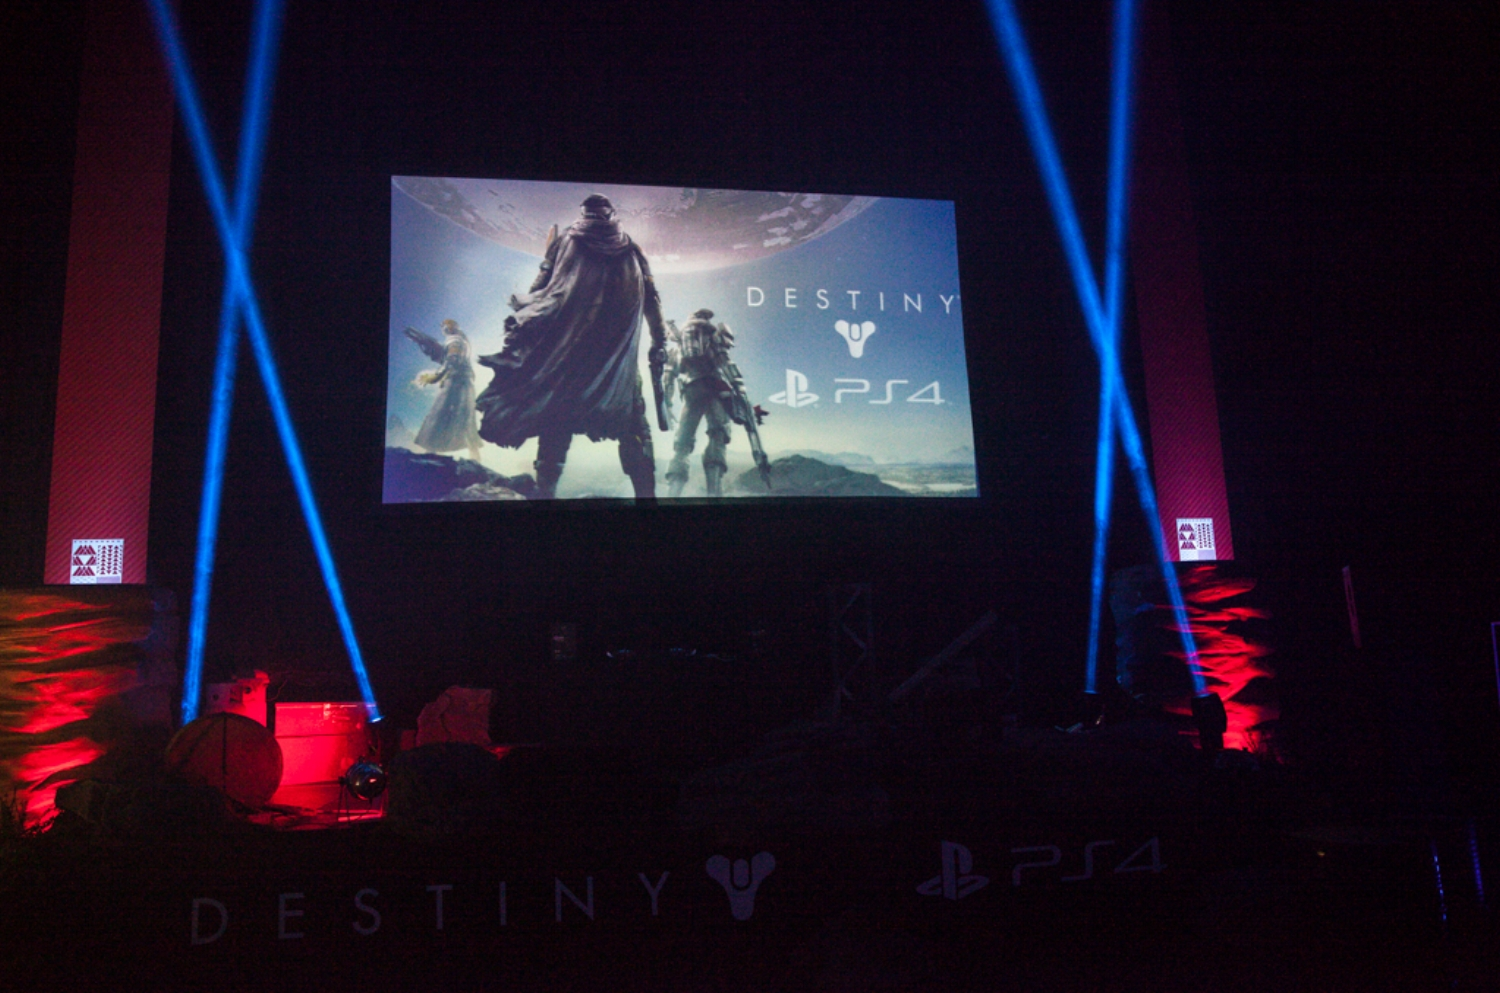 Destiny Beta Launch